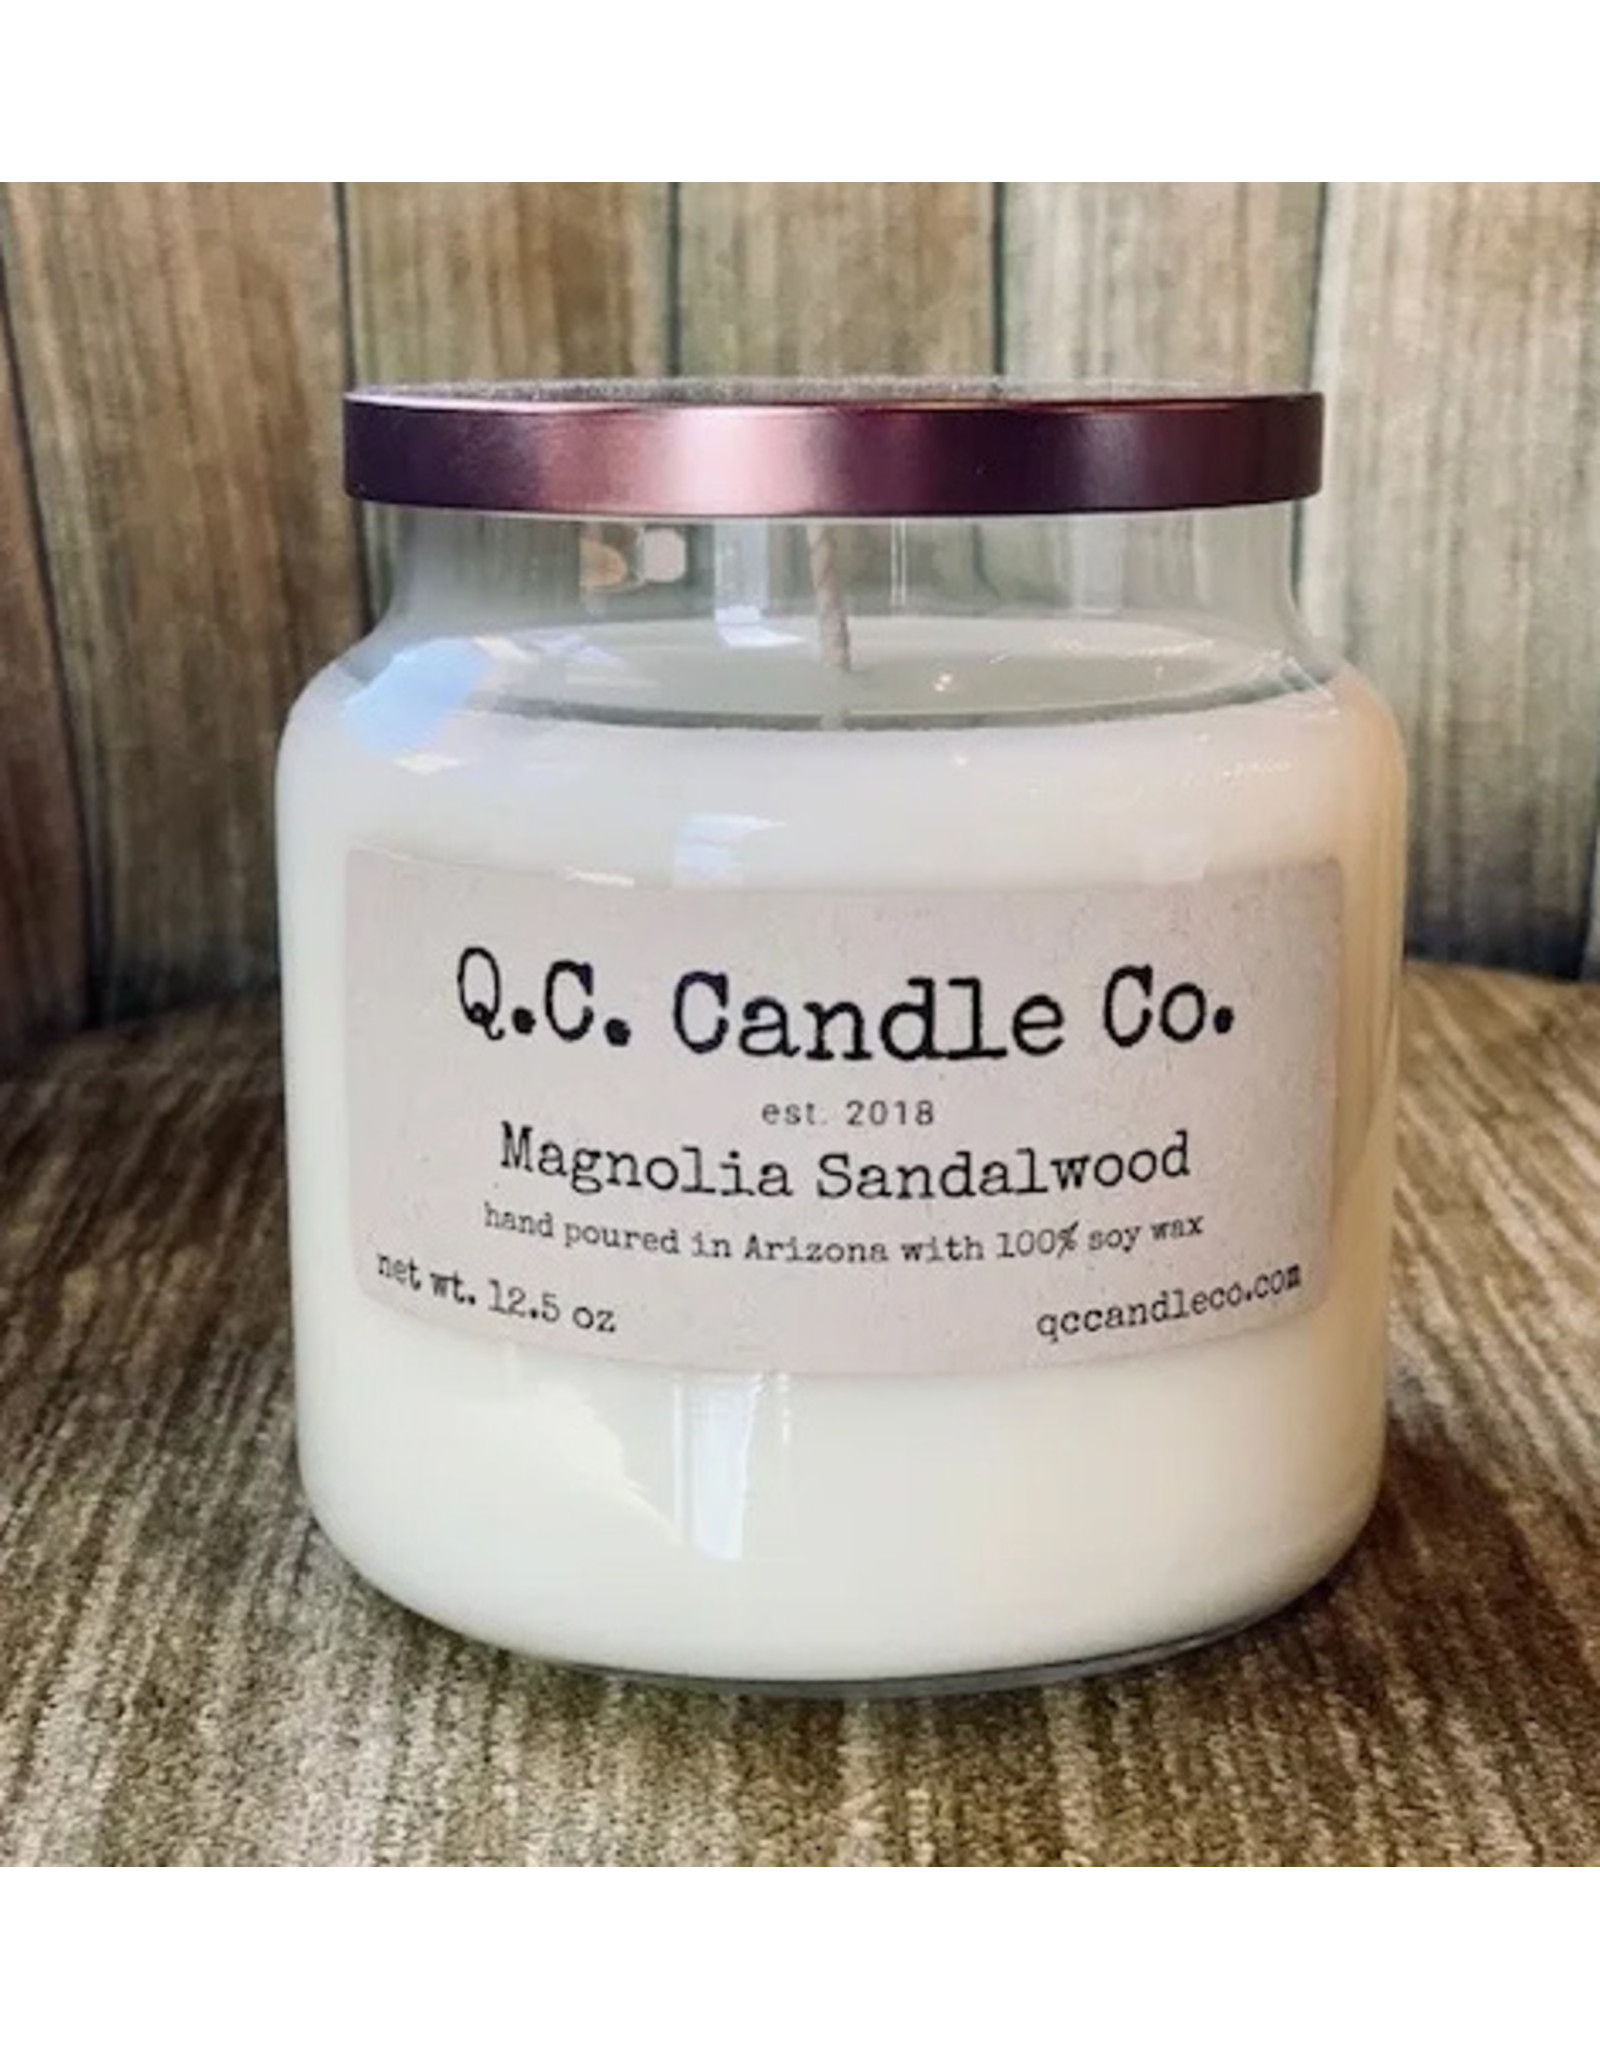 Q. C. Candle Co. Q. C. Candle Co.